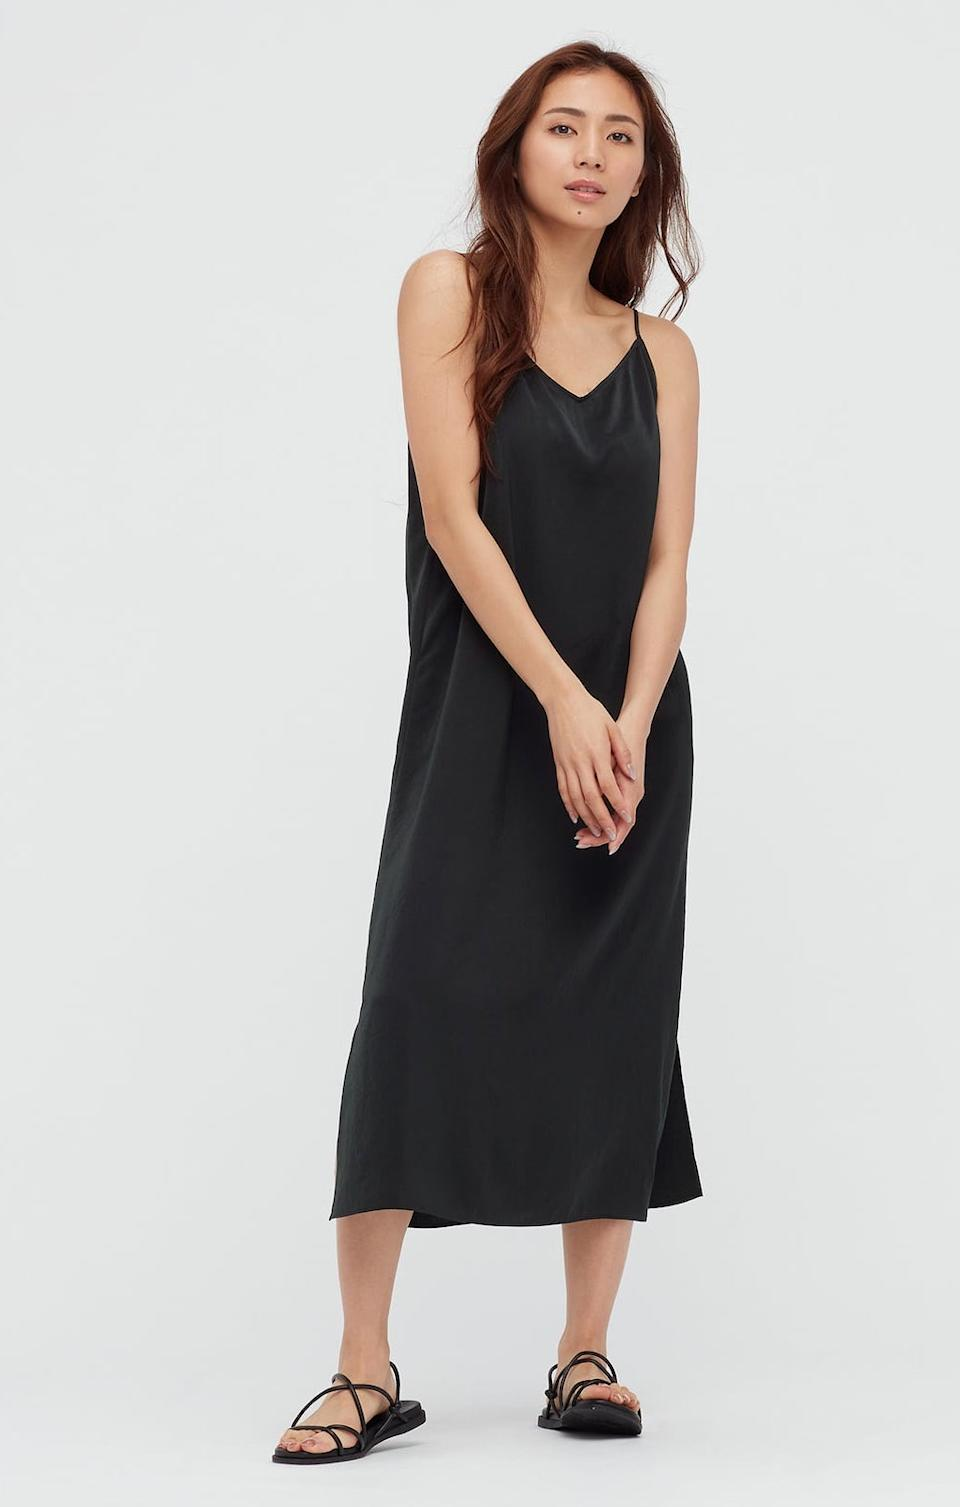 Uniqlo Camisole Side Slit Long Dress. Image via Uniqlo.